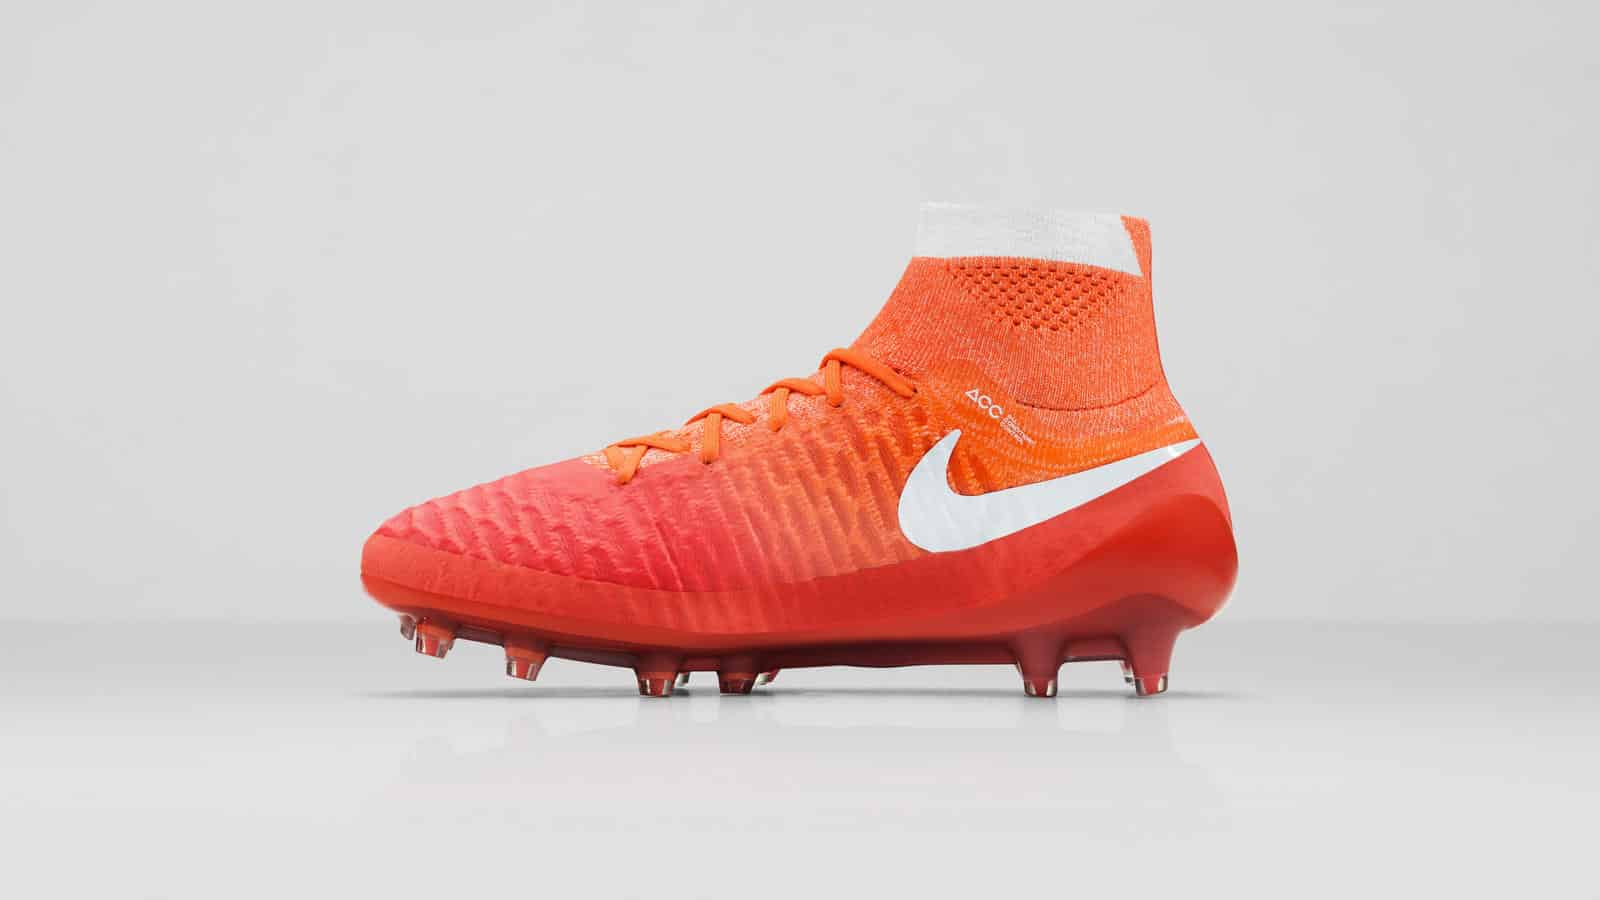 chaussure-foot-nike-2016-femme-pack-radiant-magista